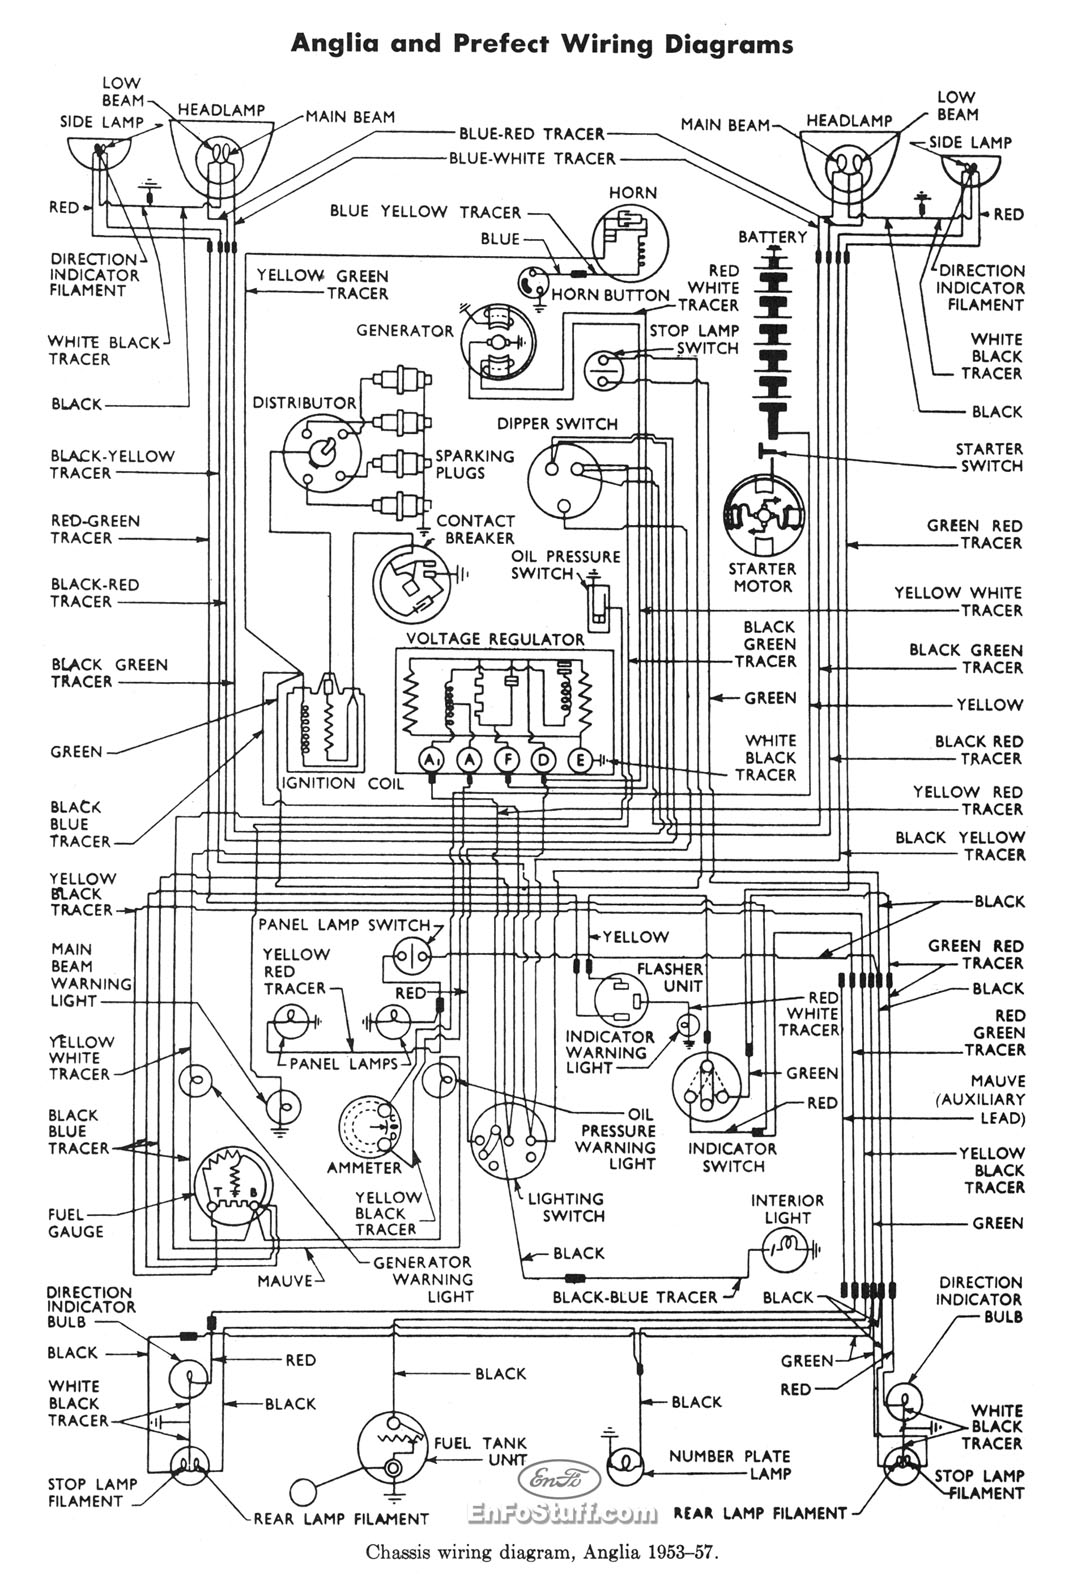 Jbl Marine Stereo Wiring Diagram Diagrams 1996 Ford Explorer Radio Schematic Wire Data Schema For Anglia 1953 57